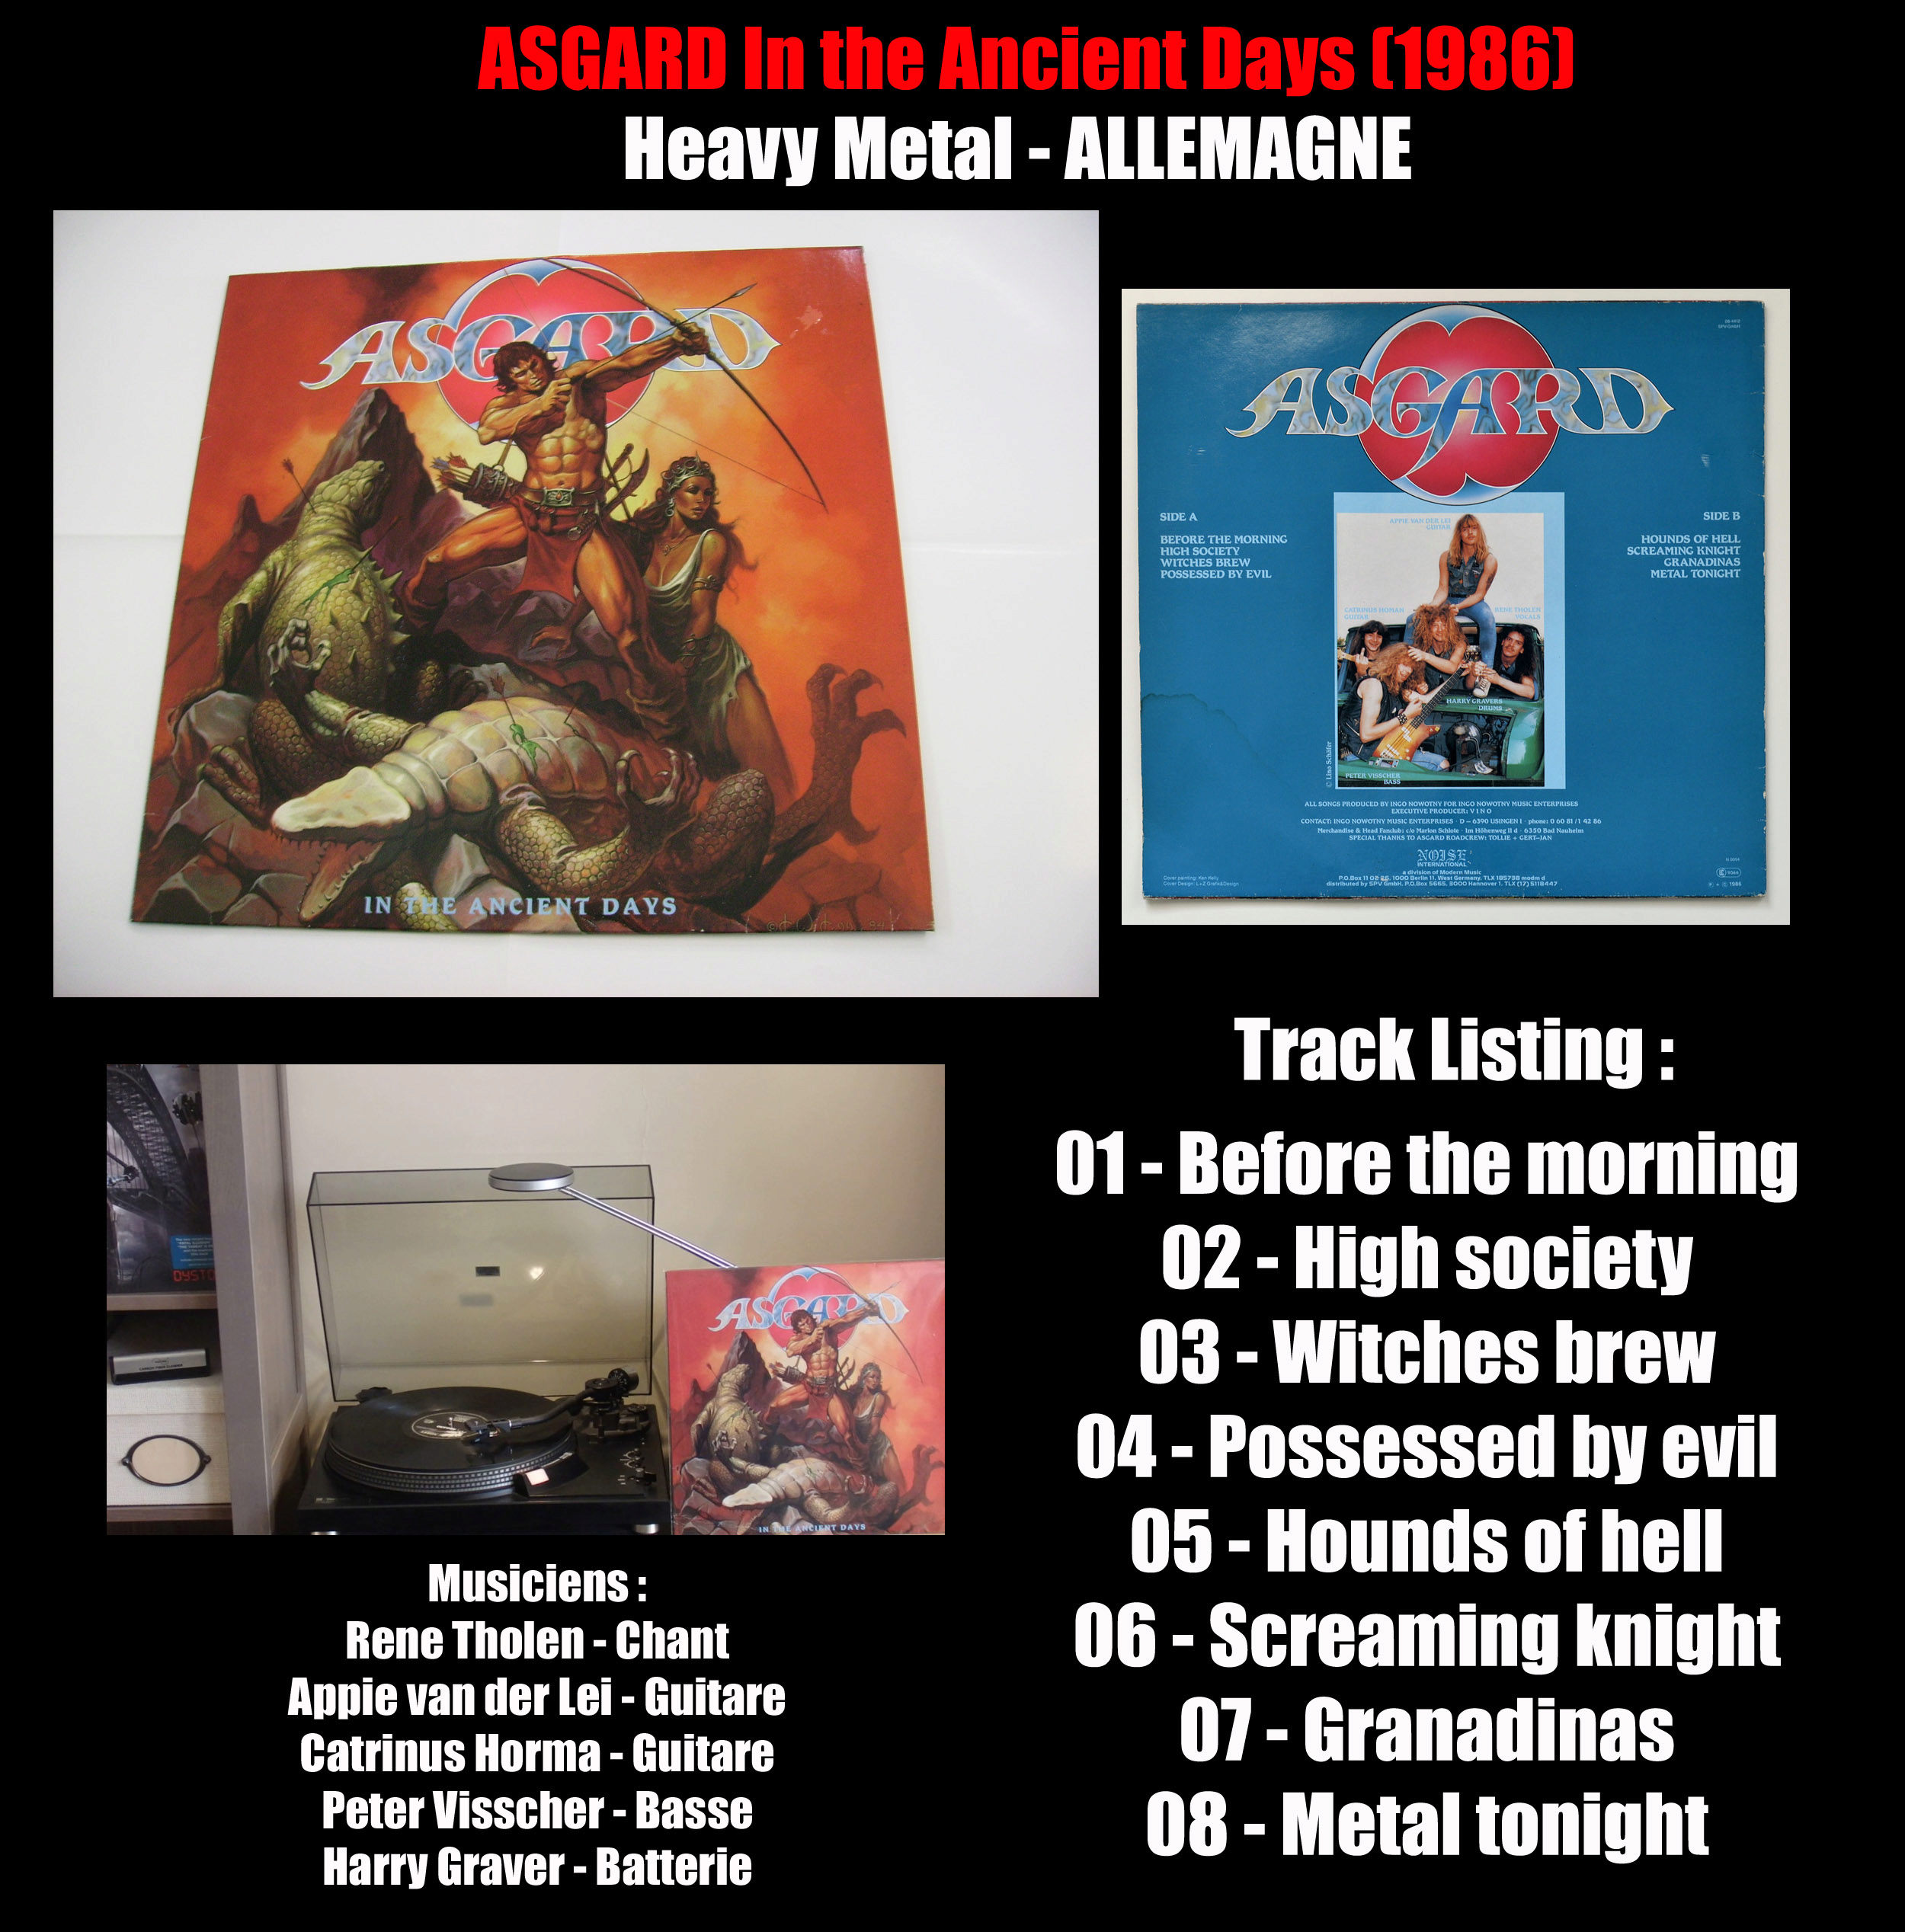 ASGARD In the Ancient Days (1986) HEAVY METAL Allemagne Asgard10